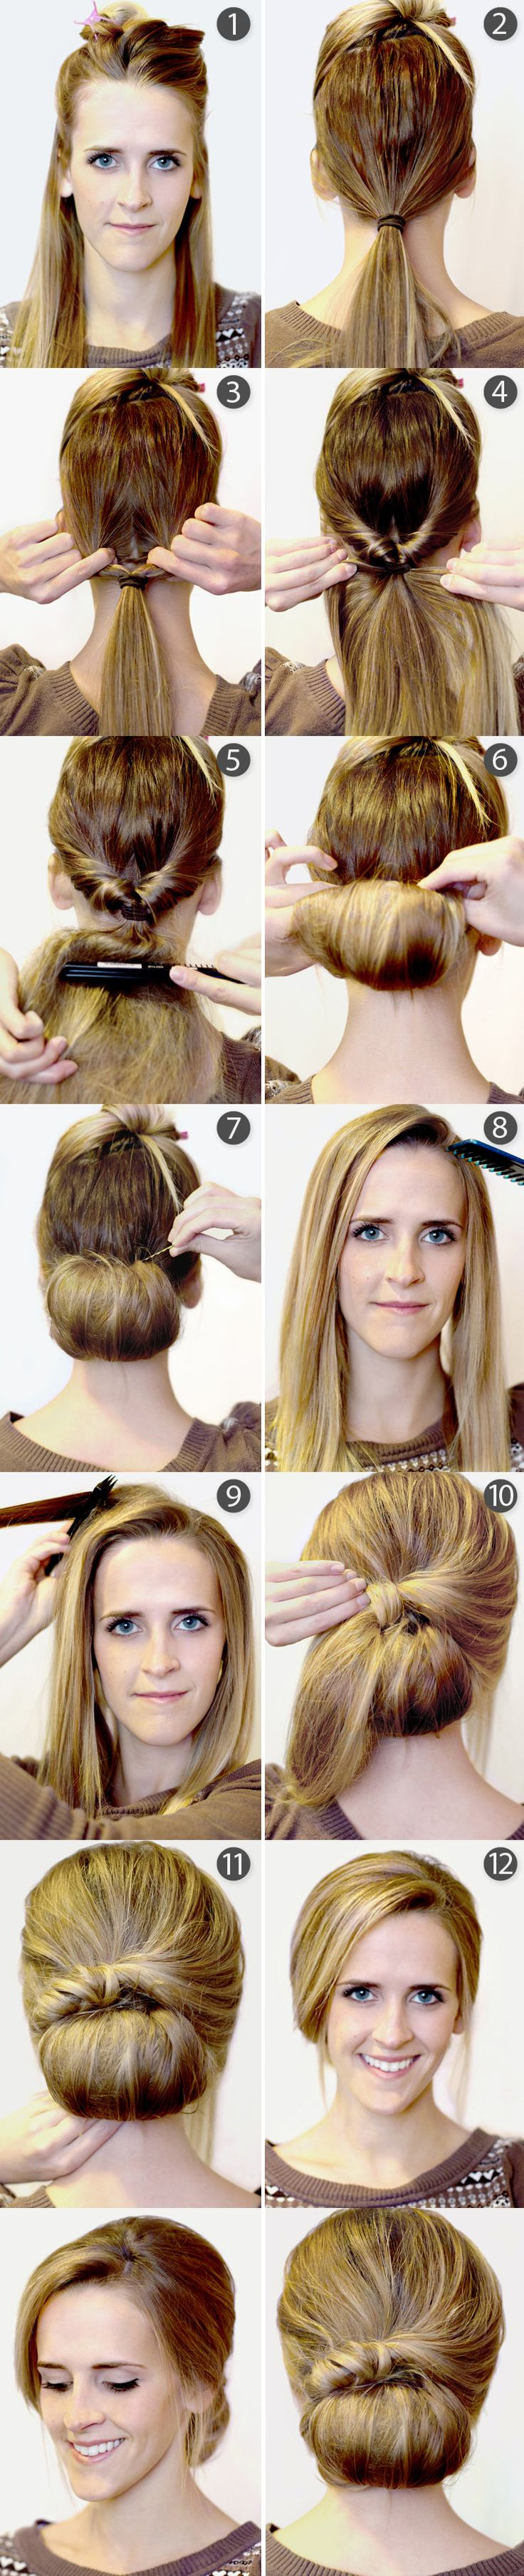 Tuto coiffure faire un chignon r tro hair and beauty - Faire un chignon ...